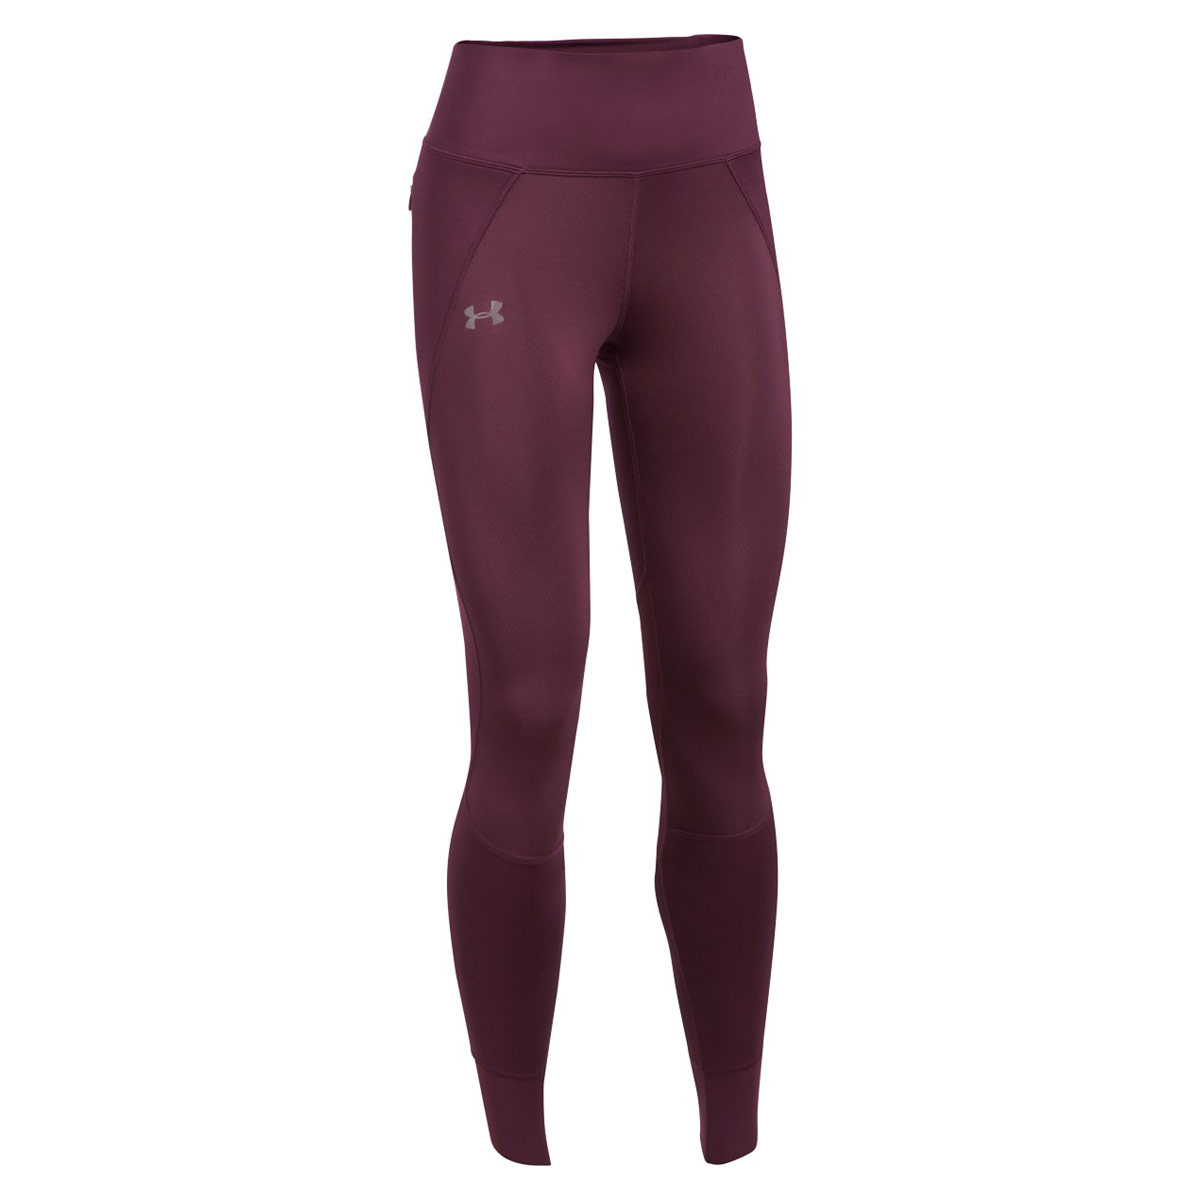 9aa97aad3fd01 Under Armour ColdGear Reactor Run Leggings - Running trousers for Women -  Red | 21RUN